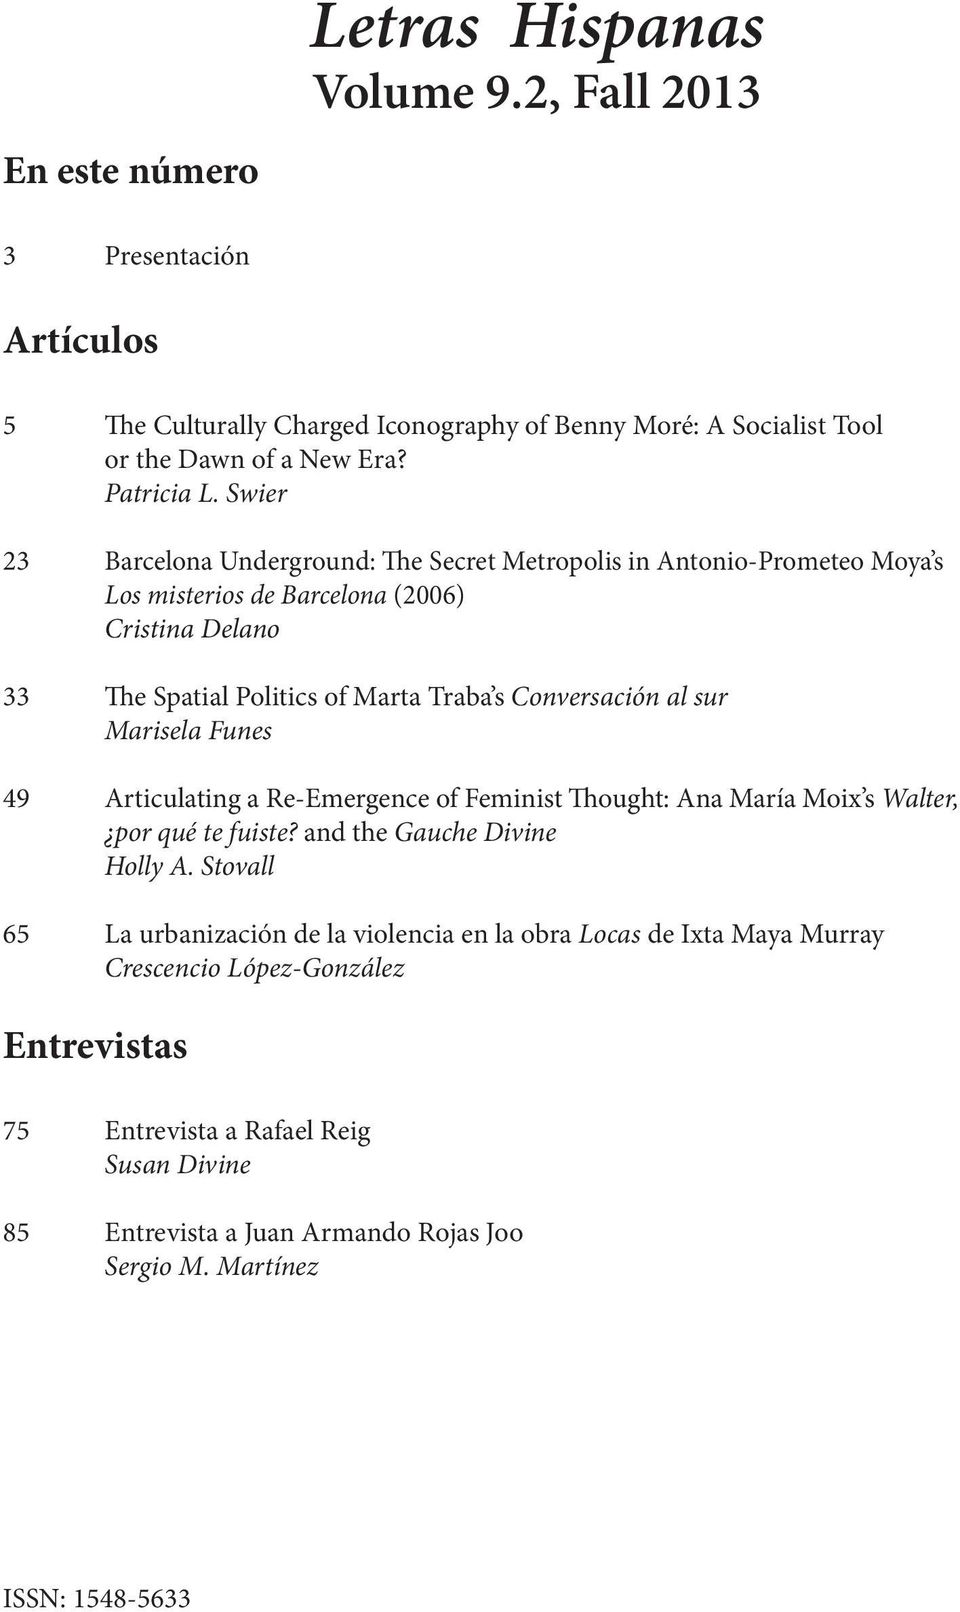 sur Marisela Funes 49 Articulating a Re-Emergence of Feminist Thought: Ana María Moix s Walter, por qué te fuiste? and the Gauche Divine Holly A.